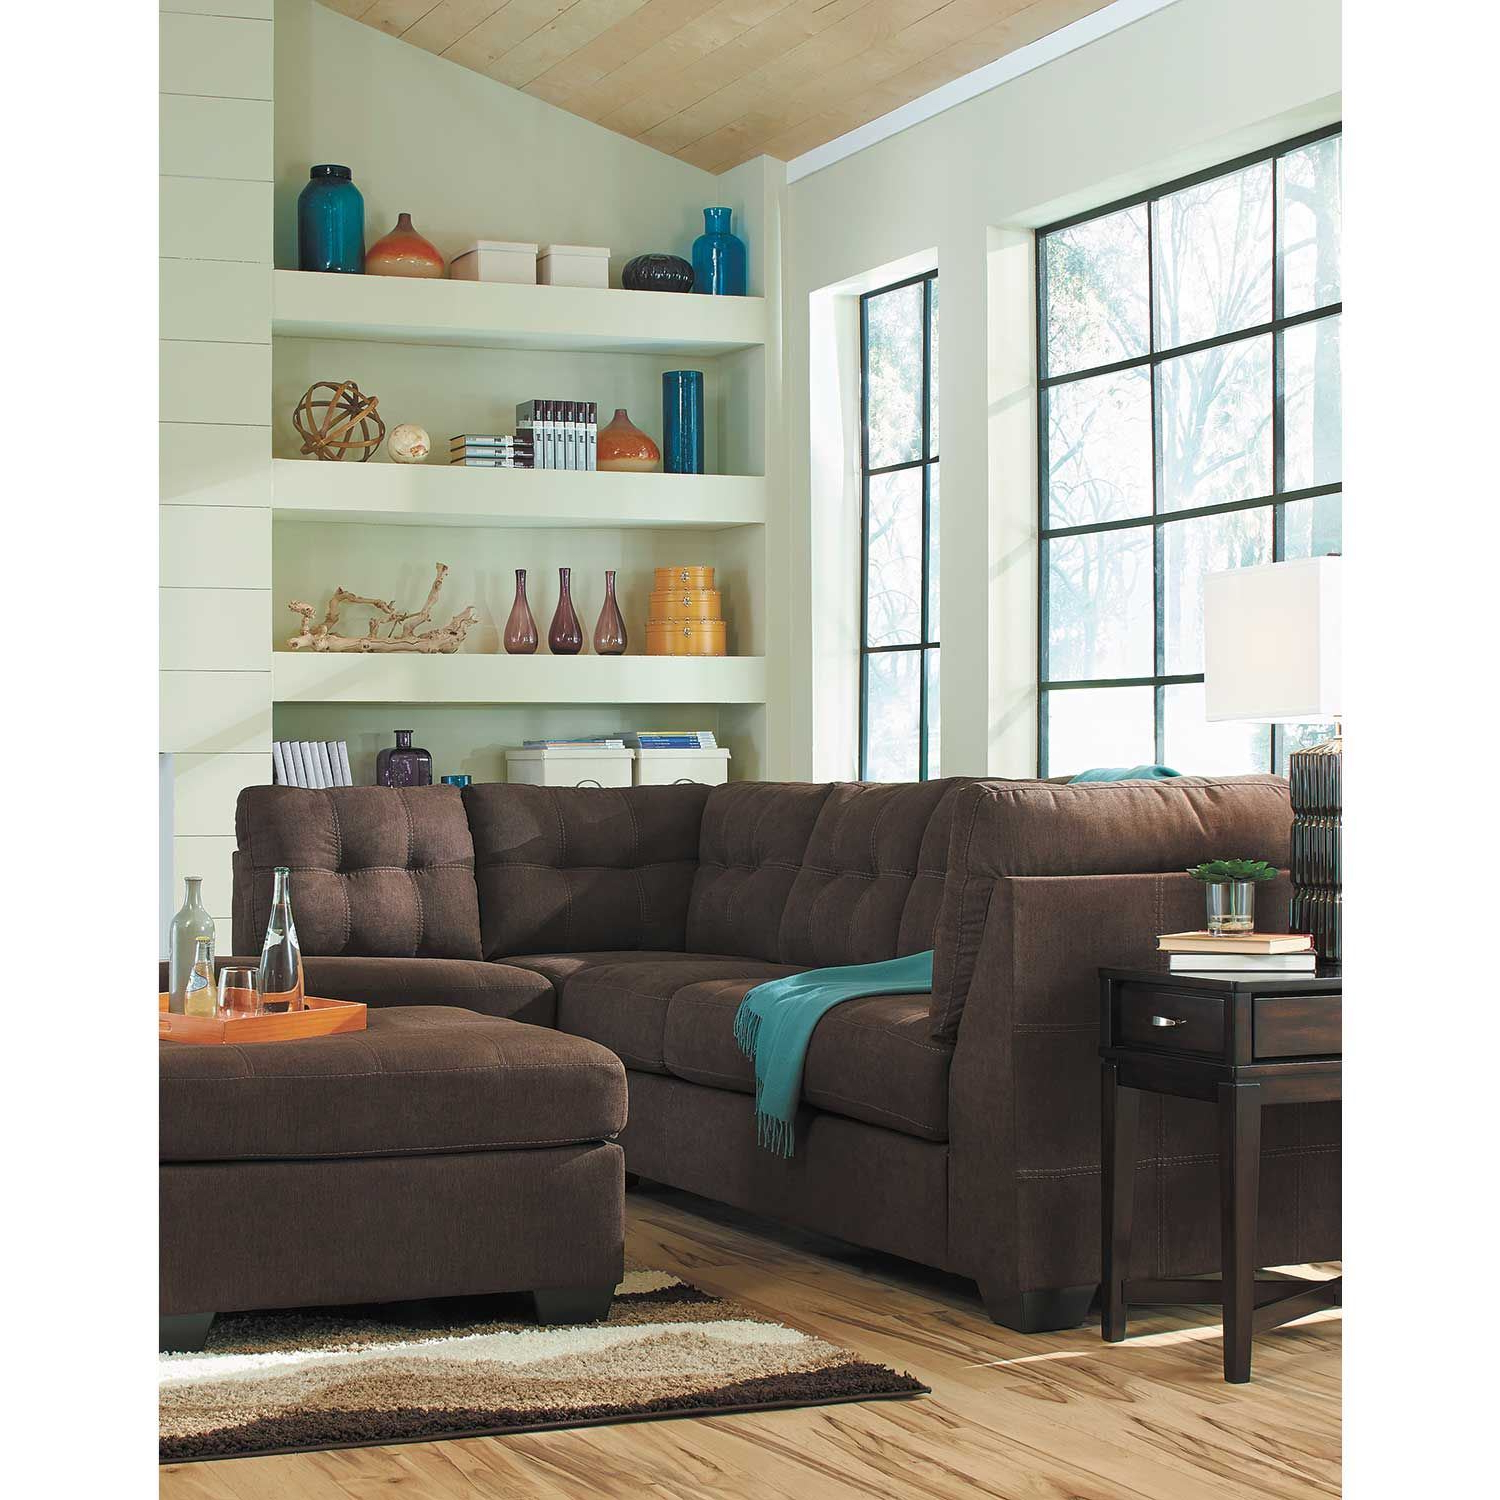 Fashionable Maier Walnut 2 Piece Sectional With Laf Chaise (View 8 of 20)